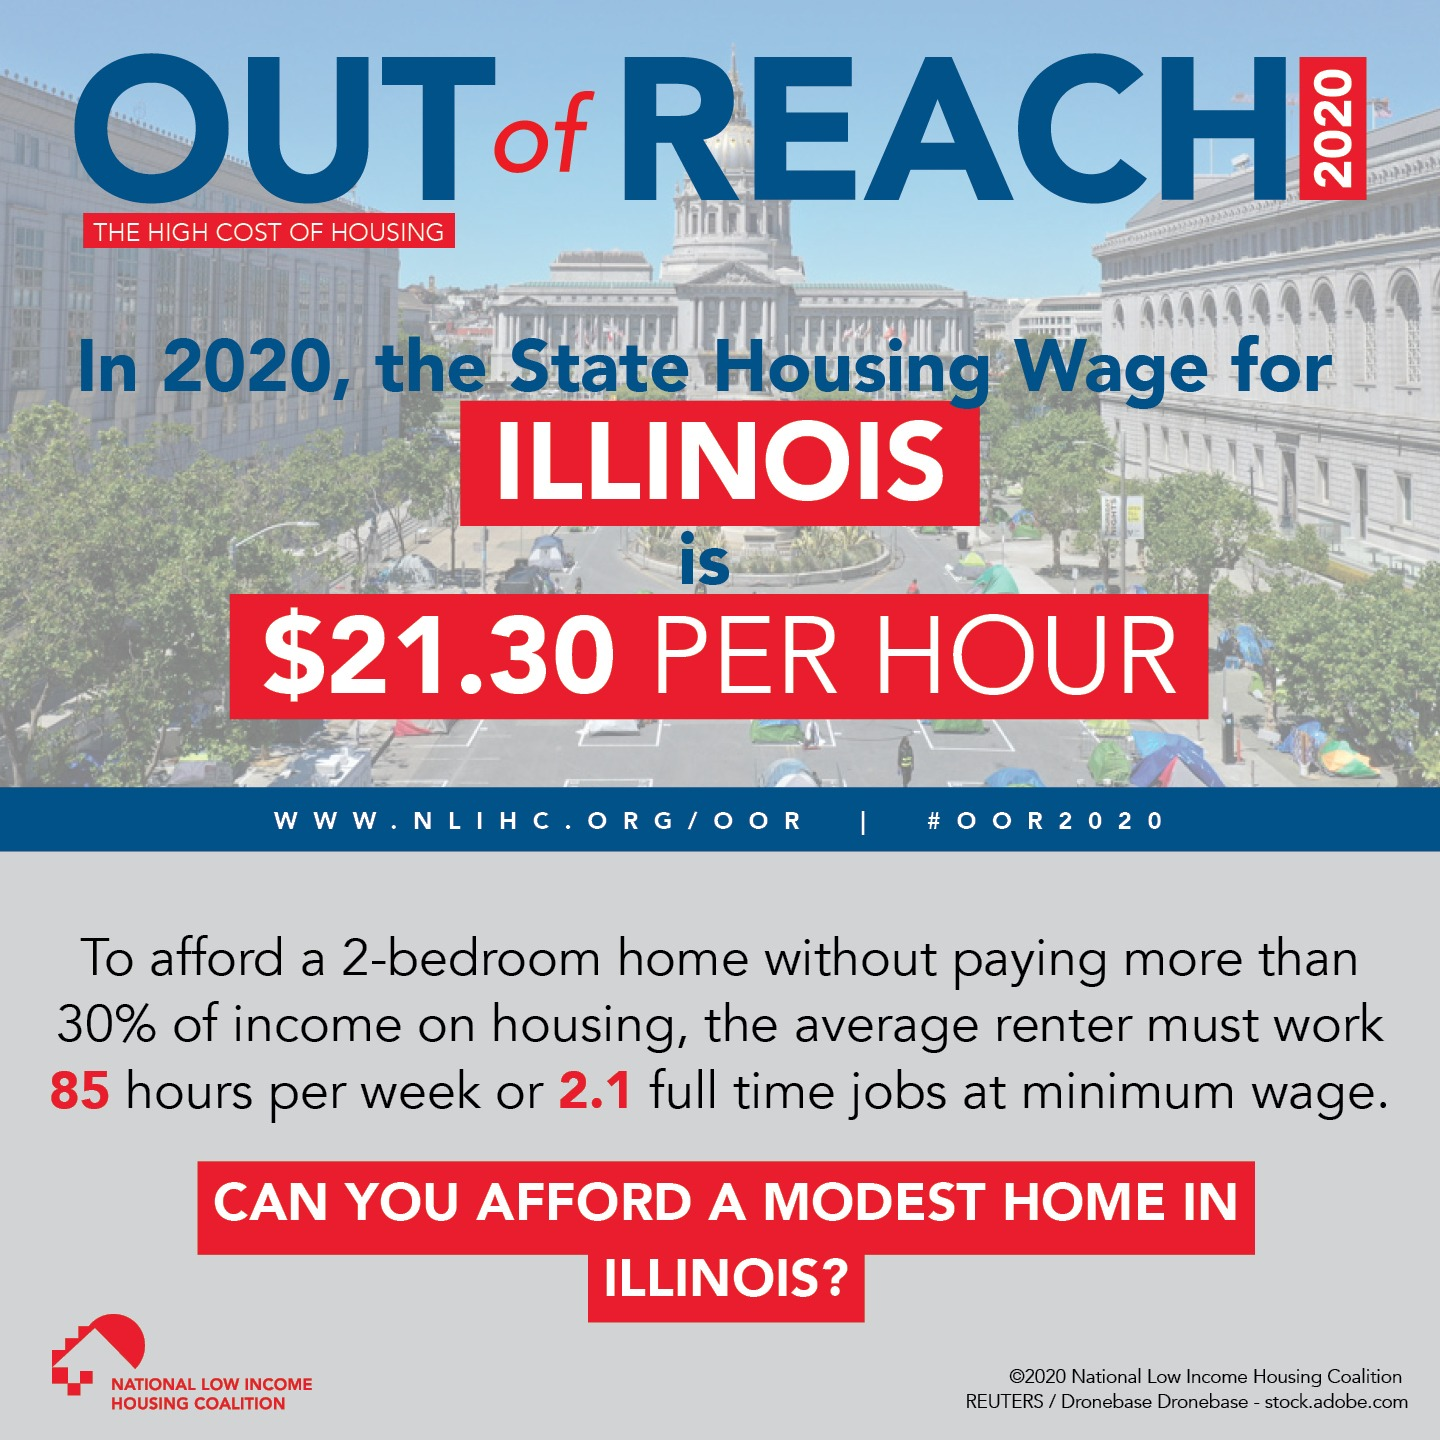 Out of Reach - Illinois Housing Wage is $21.30